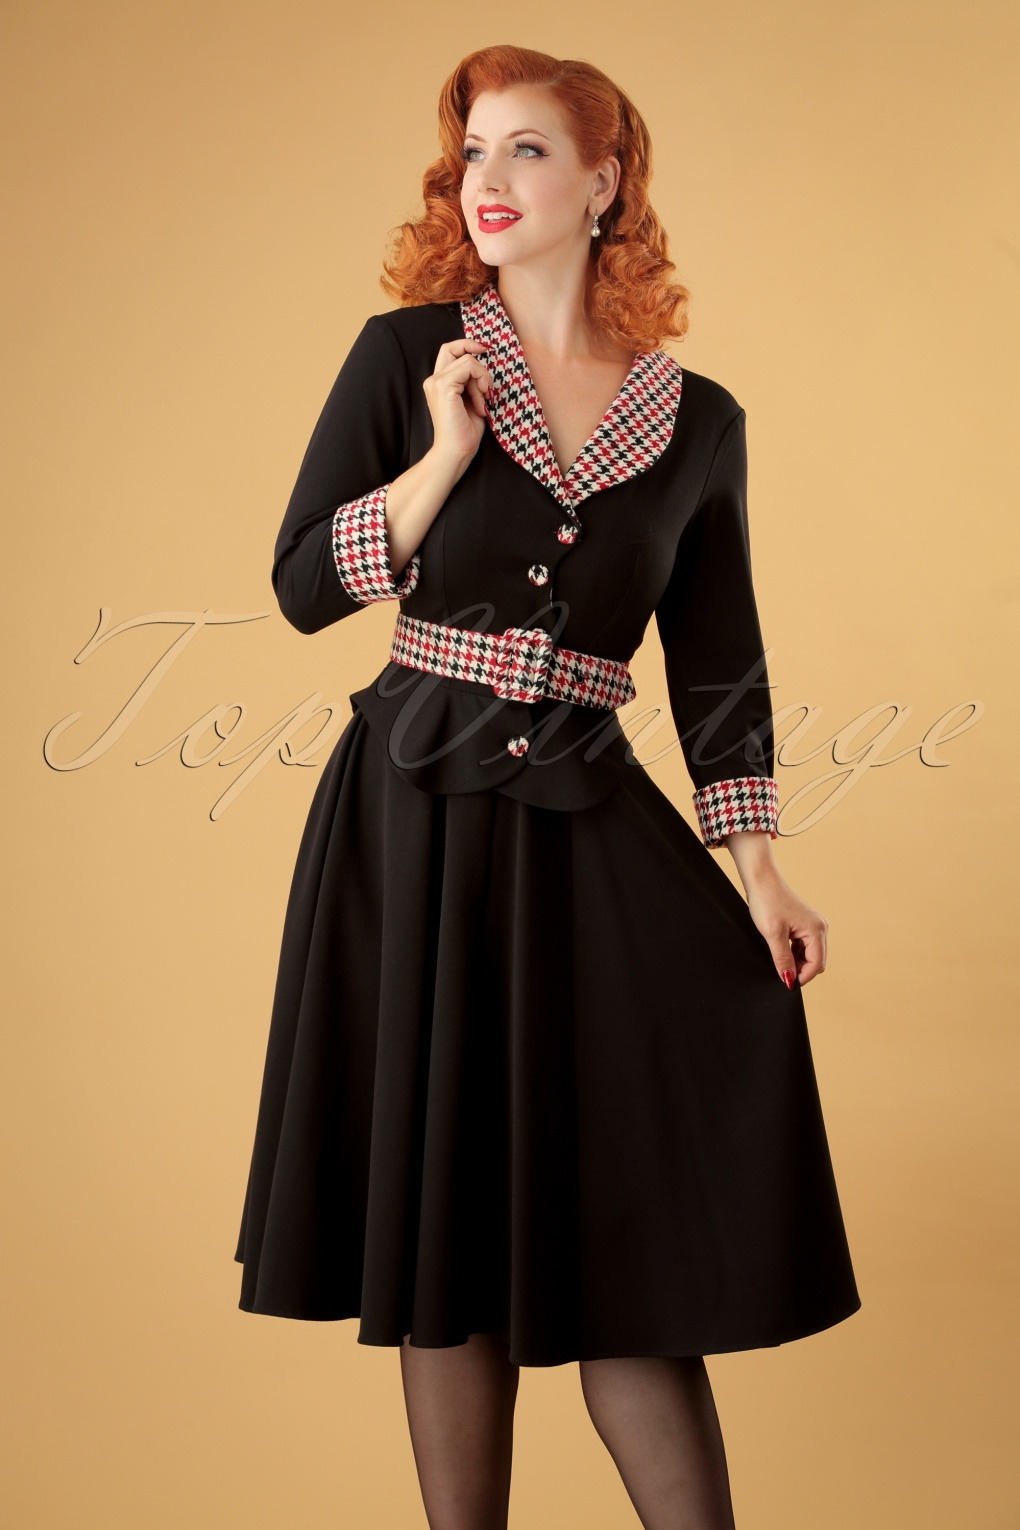 Pin Up Dresses | Pinup Clothing & Fashion 50s Ambre Houndstooth Swing Dress in Black £98.49 AT vintagedancer.com